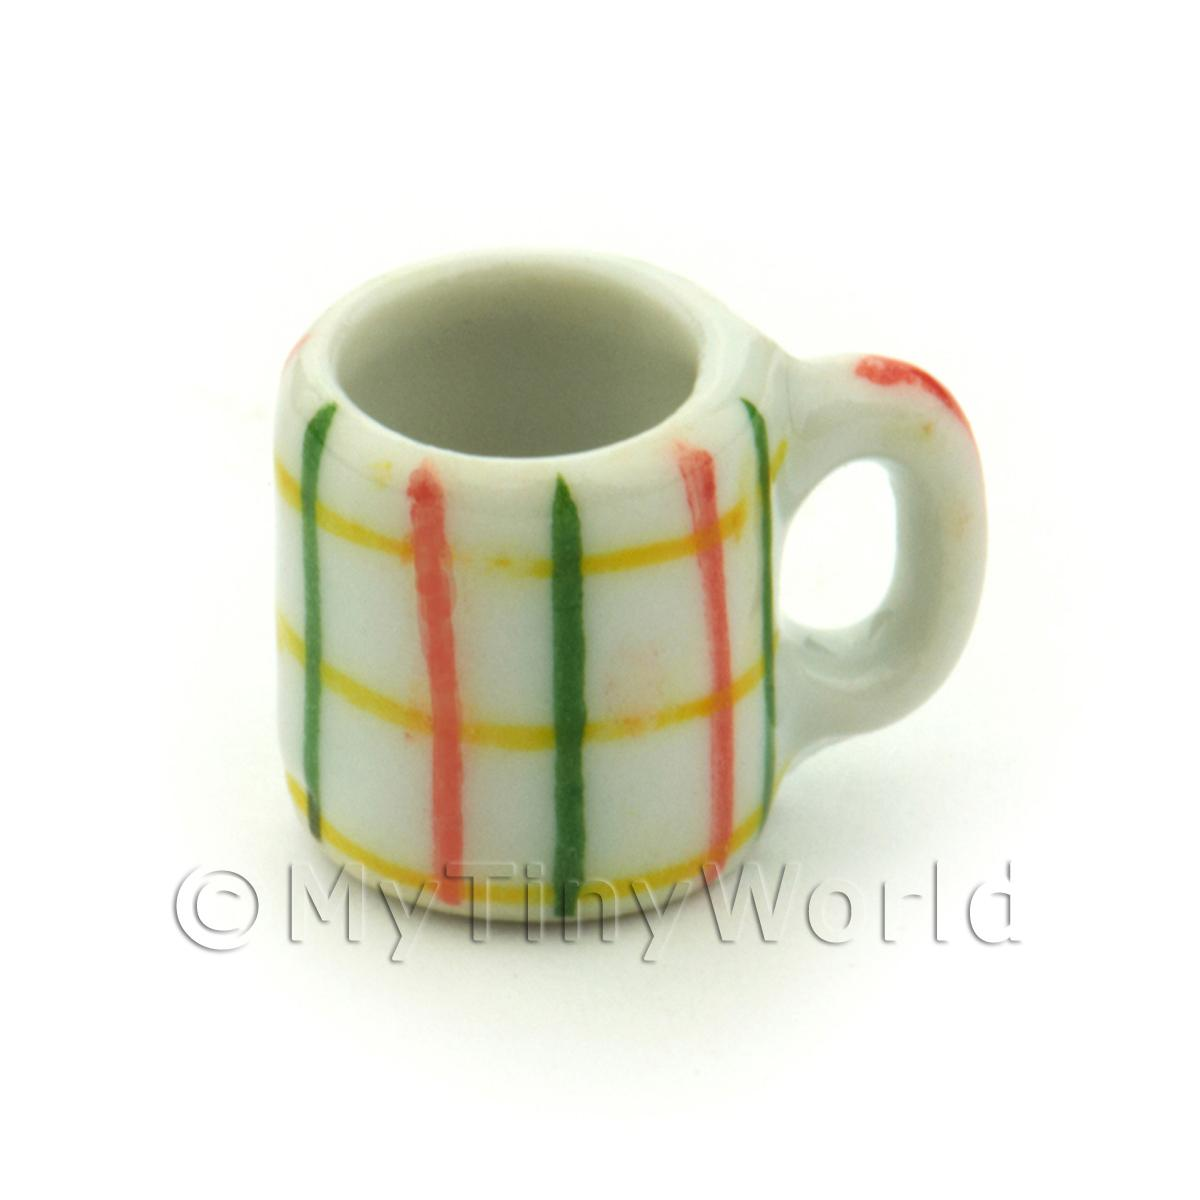 Dolls House Miniature Crosshatch Pattern Ceramic Coffee Mug